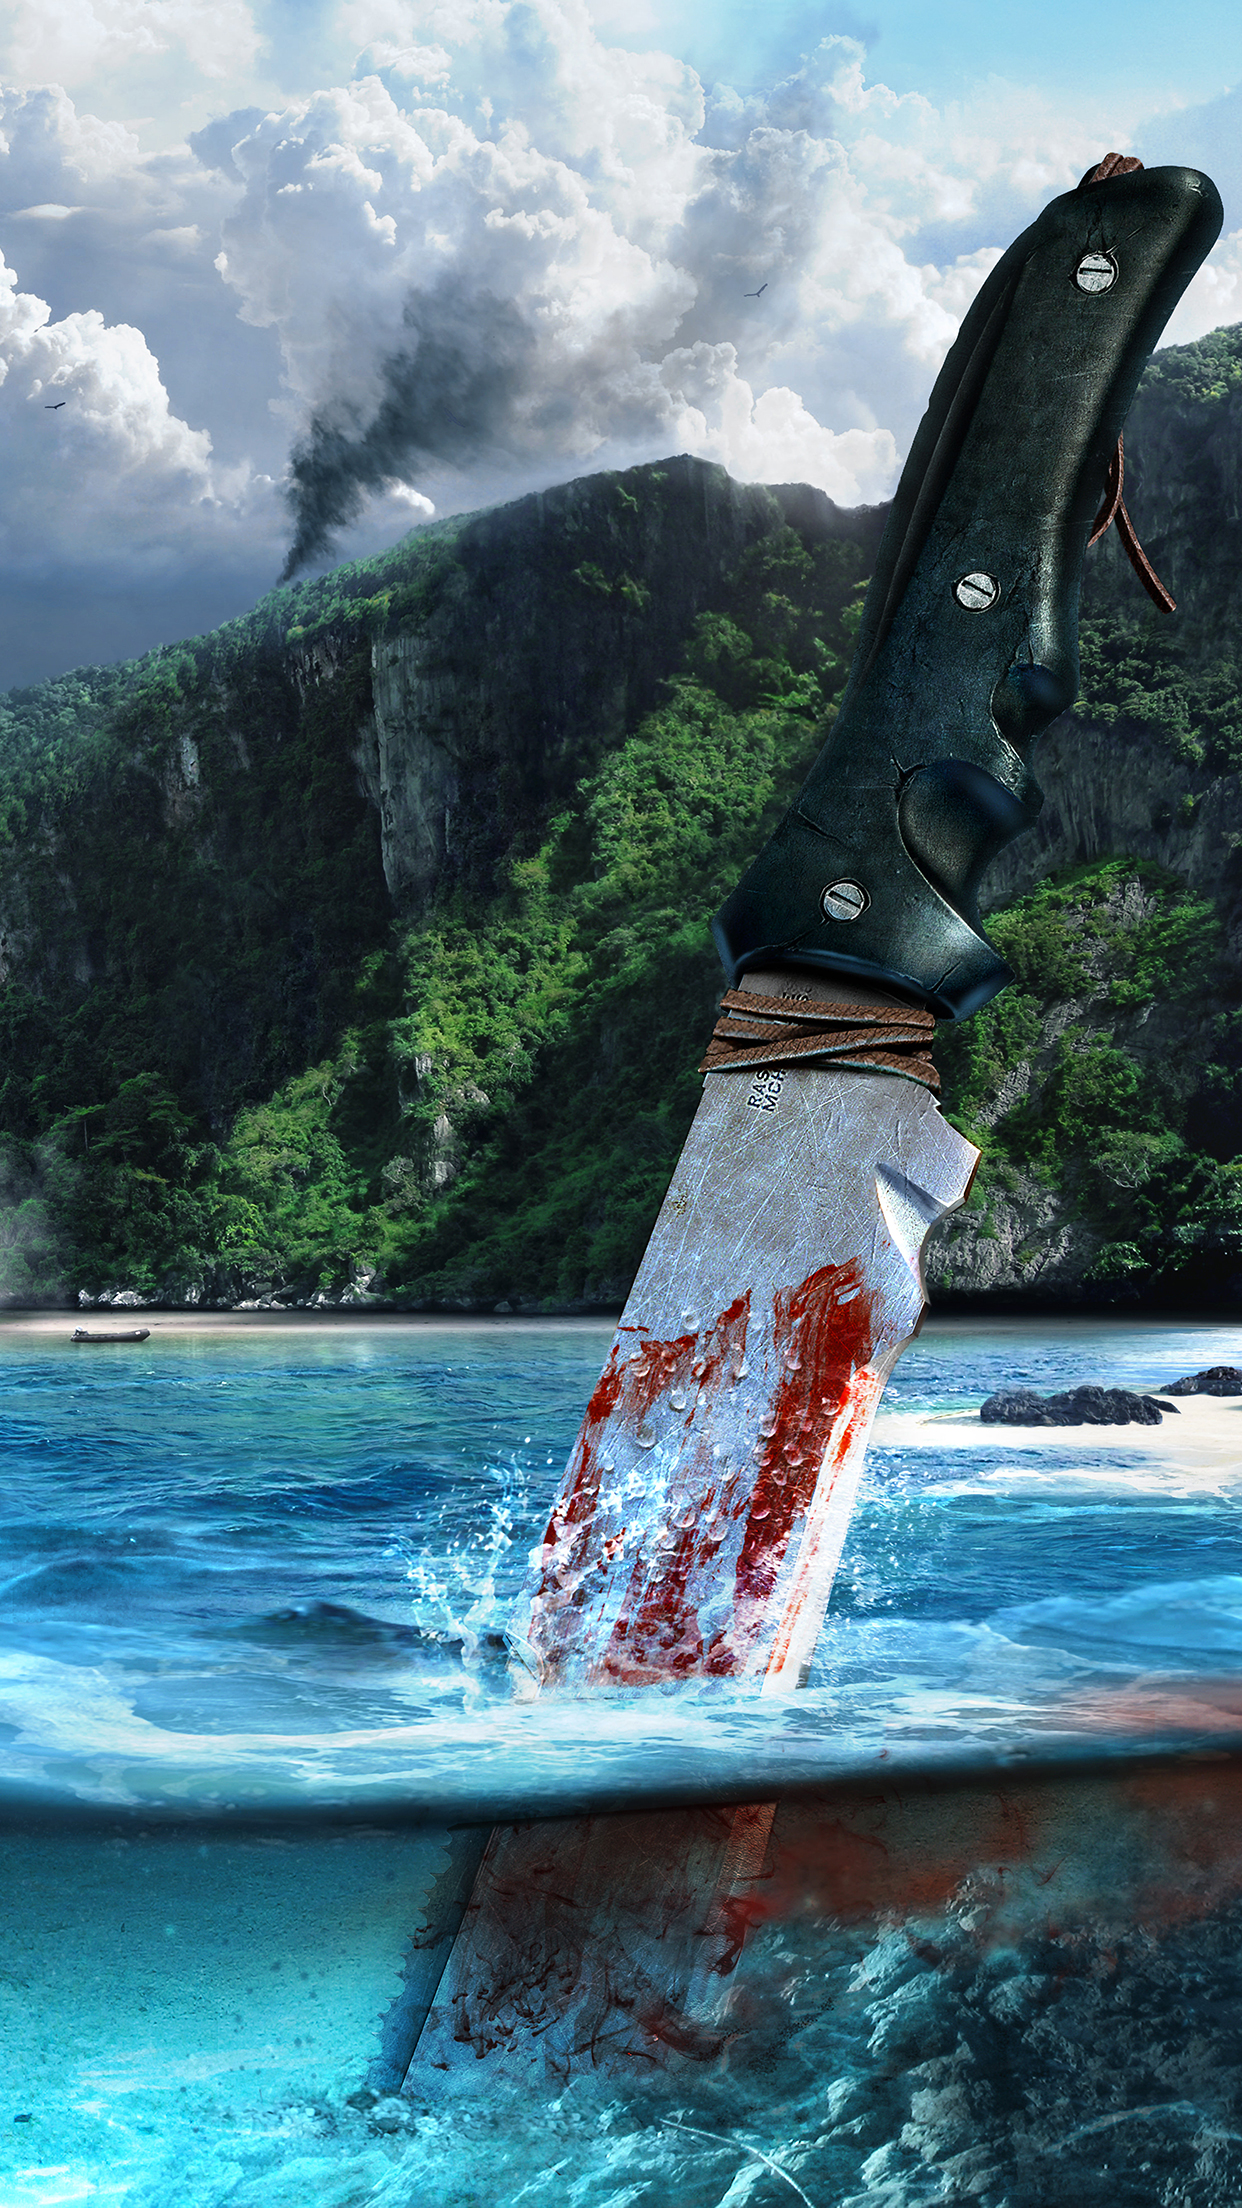 Graffiti Wallpaper For Iphone 5 Far Cry 3 Wallpaper For Iphone X 8 7 6 Free Download